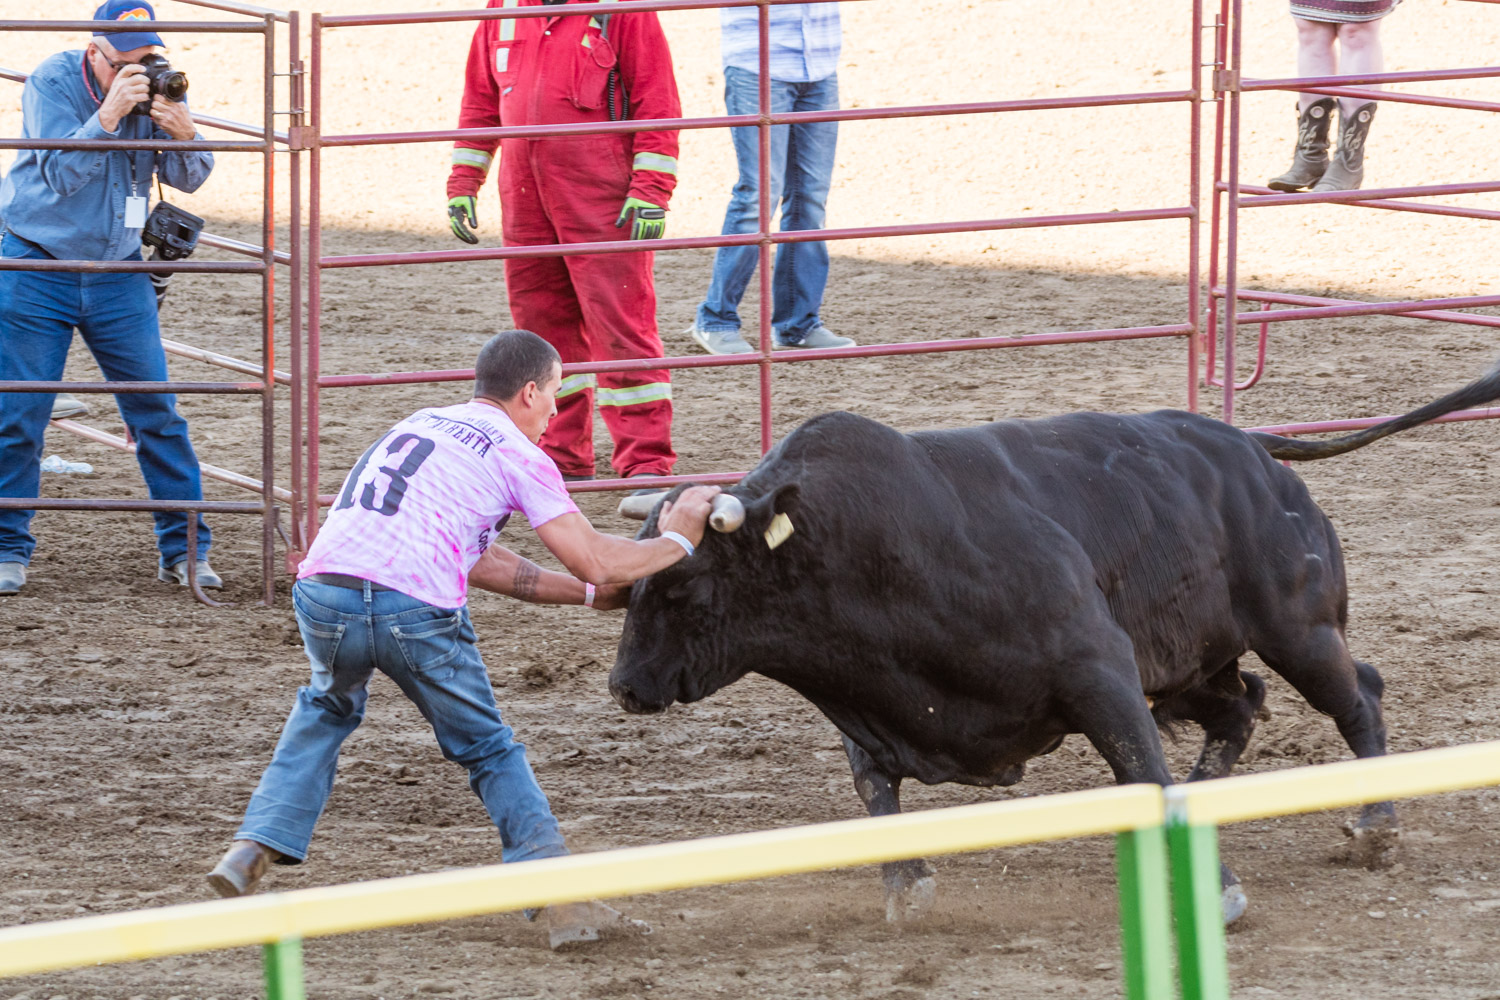 The bull run, imagine dodge ball but with a few angry bulls instead of balls. The idea was to remain in the circuit for as long as possible without being completely taken out by a bull.